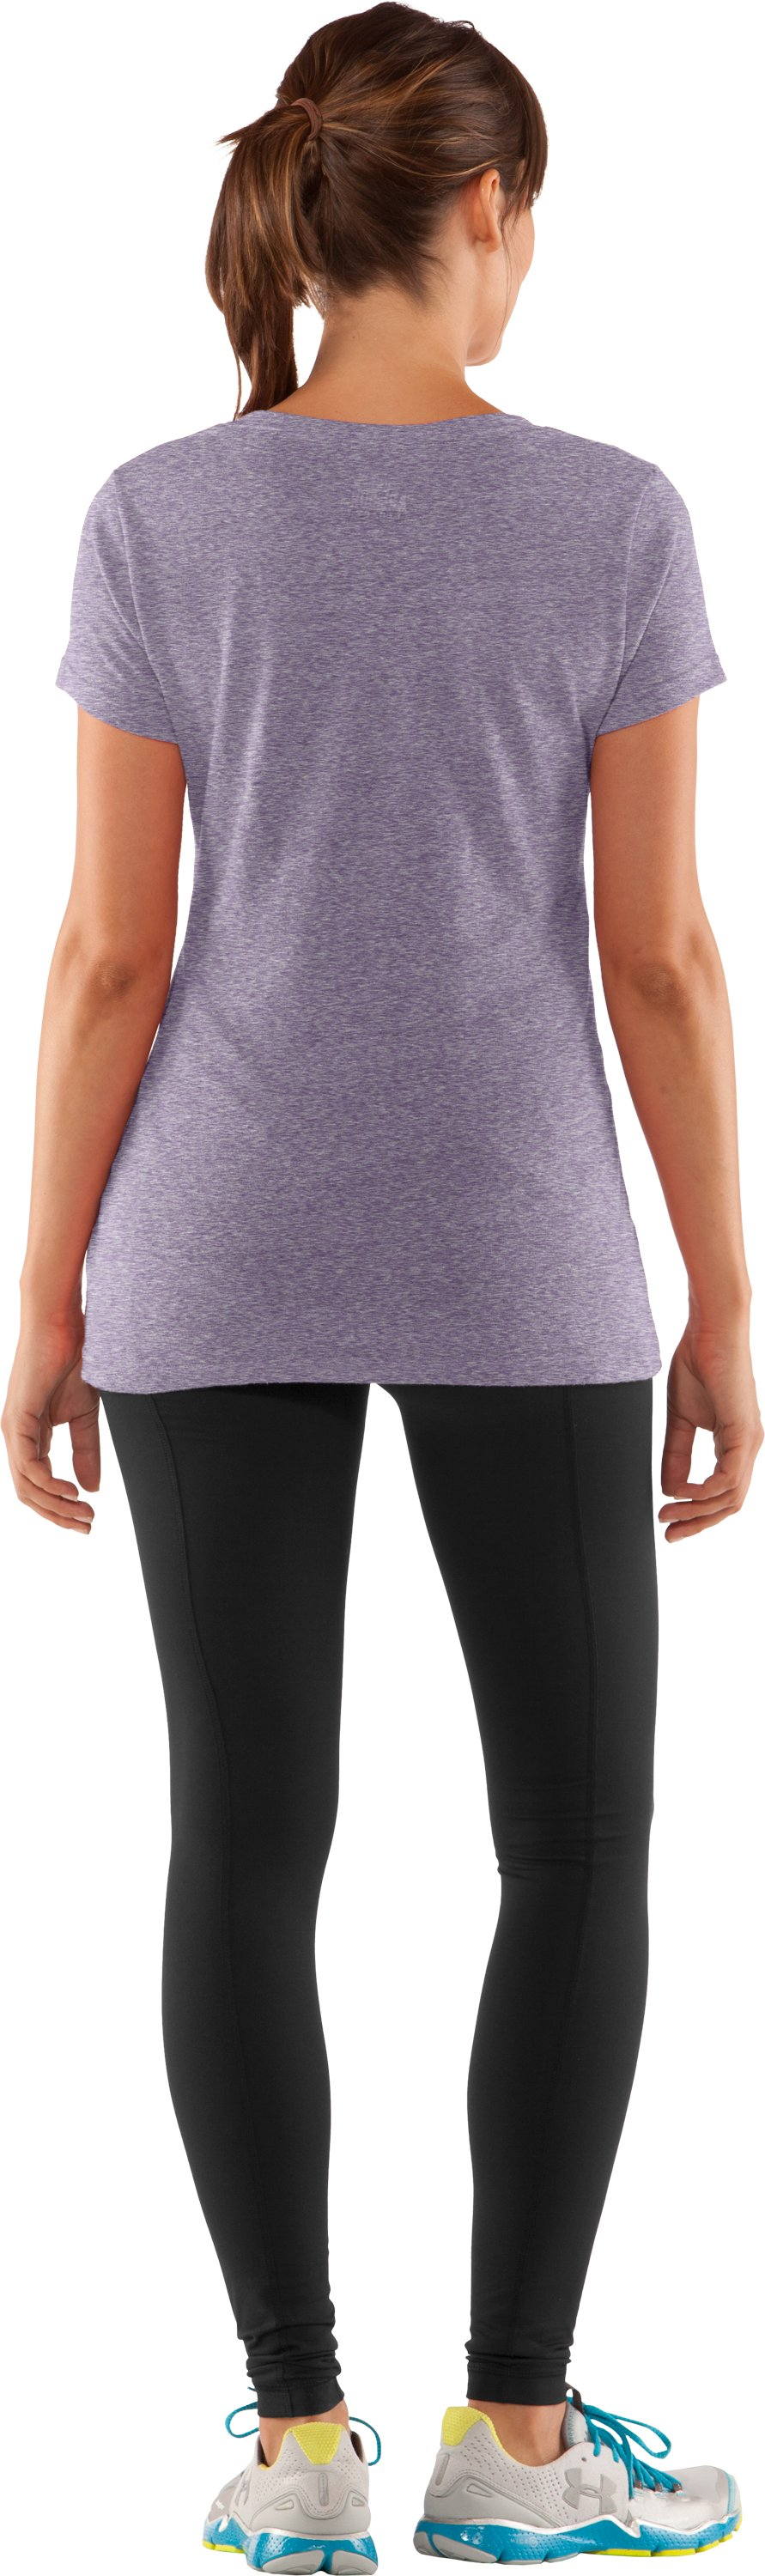 Women's Northwestern Under Armour® Legacy T-Shirt, Purple, Back